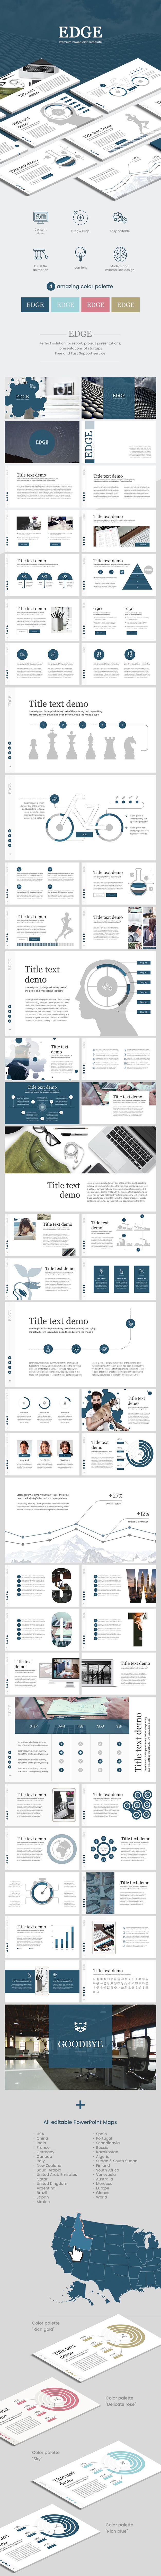 57 best powerpoint template images on pinterest ui ux animation